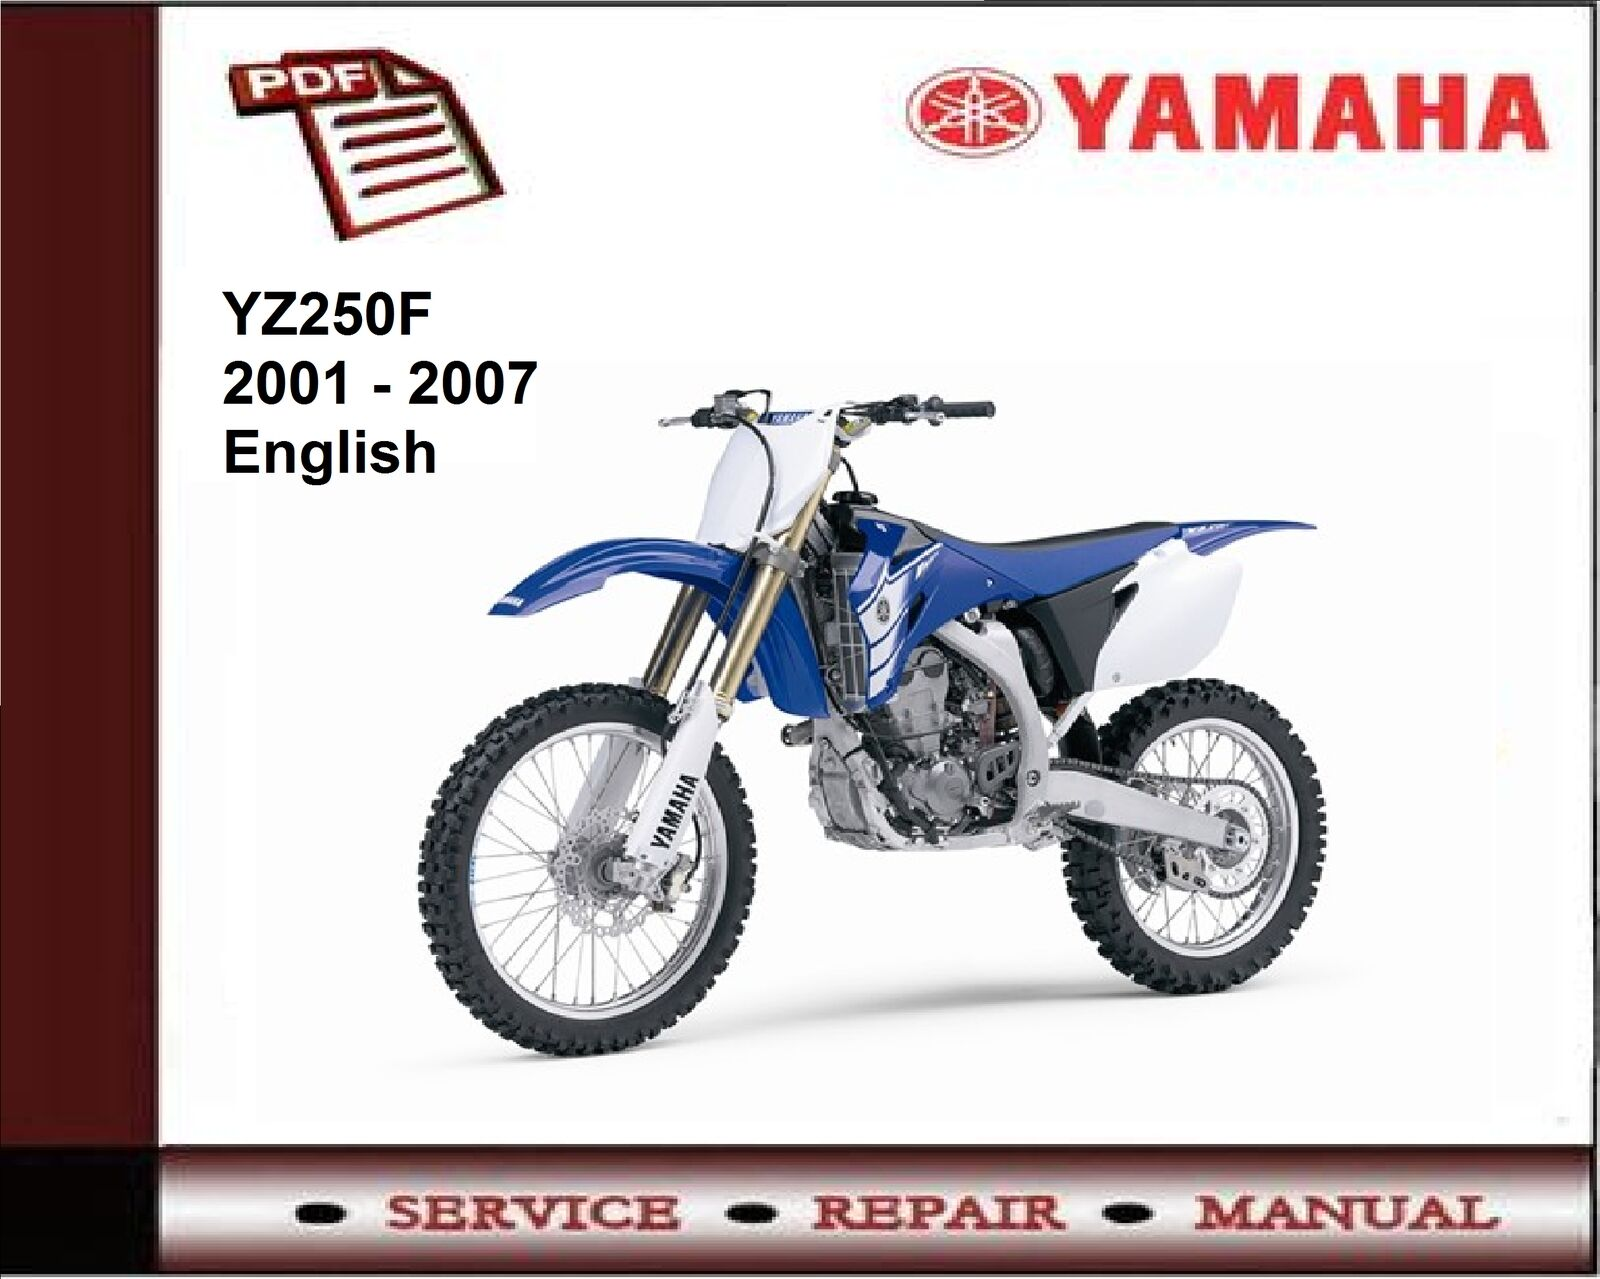 Yamaha YZ250F YZ250 F 2001 - 2007 Service Repair Workshop Manual 1 of 1FREE  Shipping ...